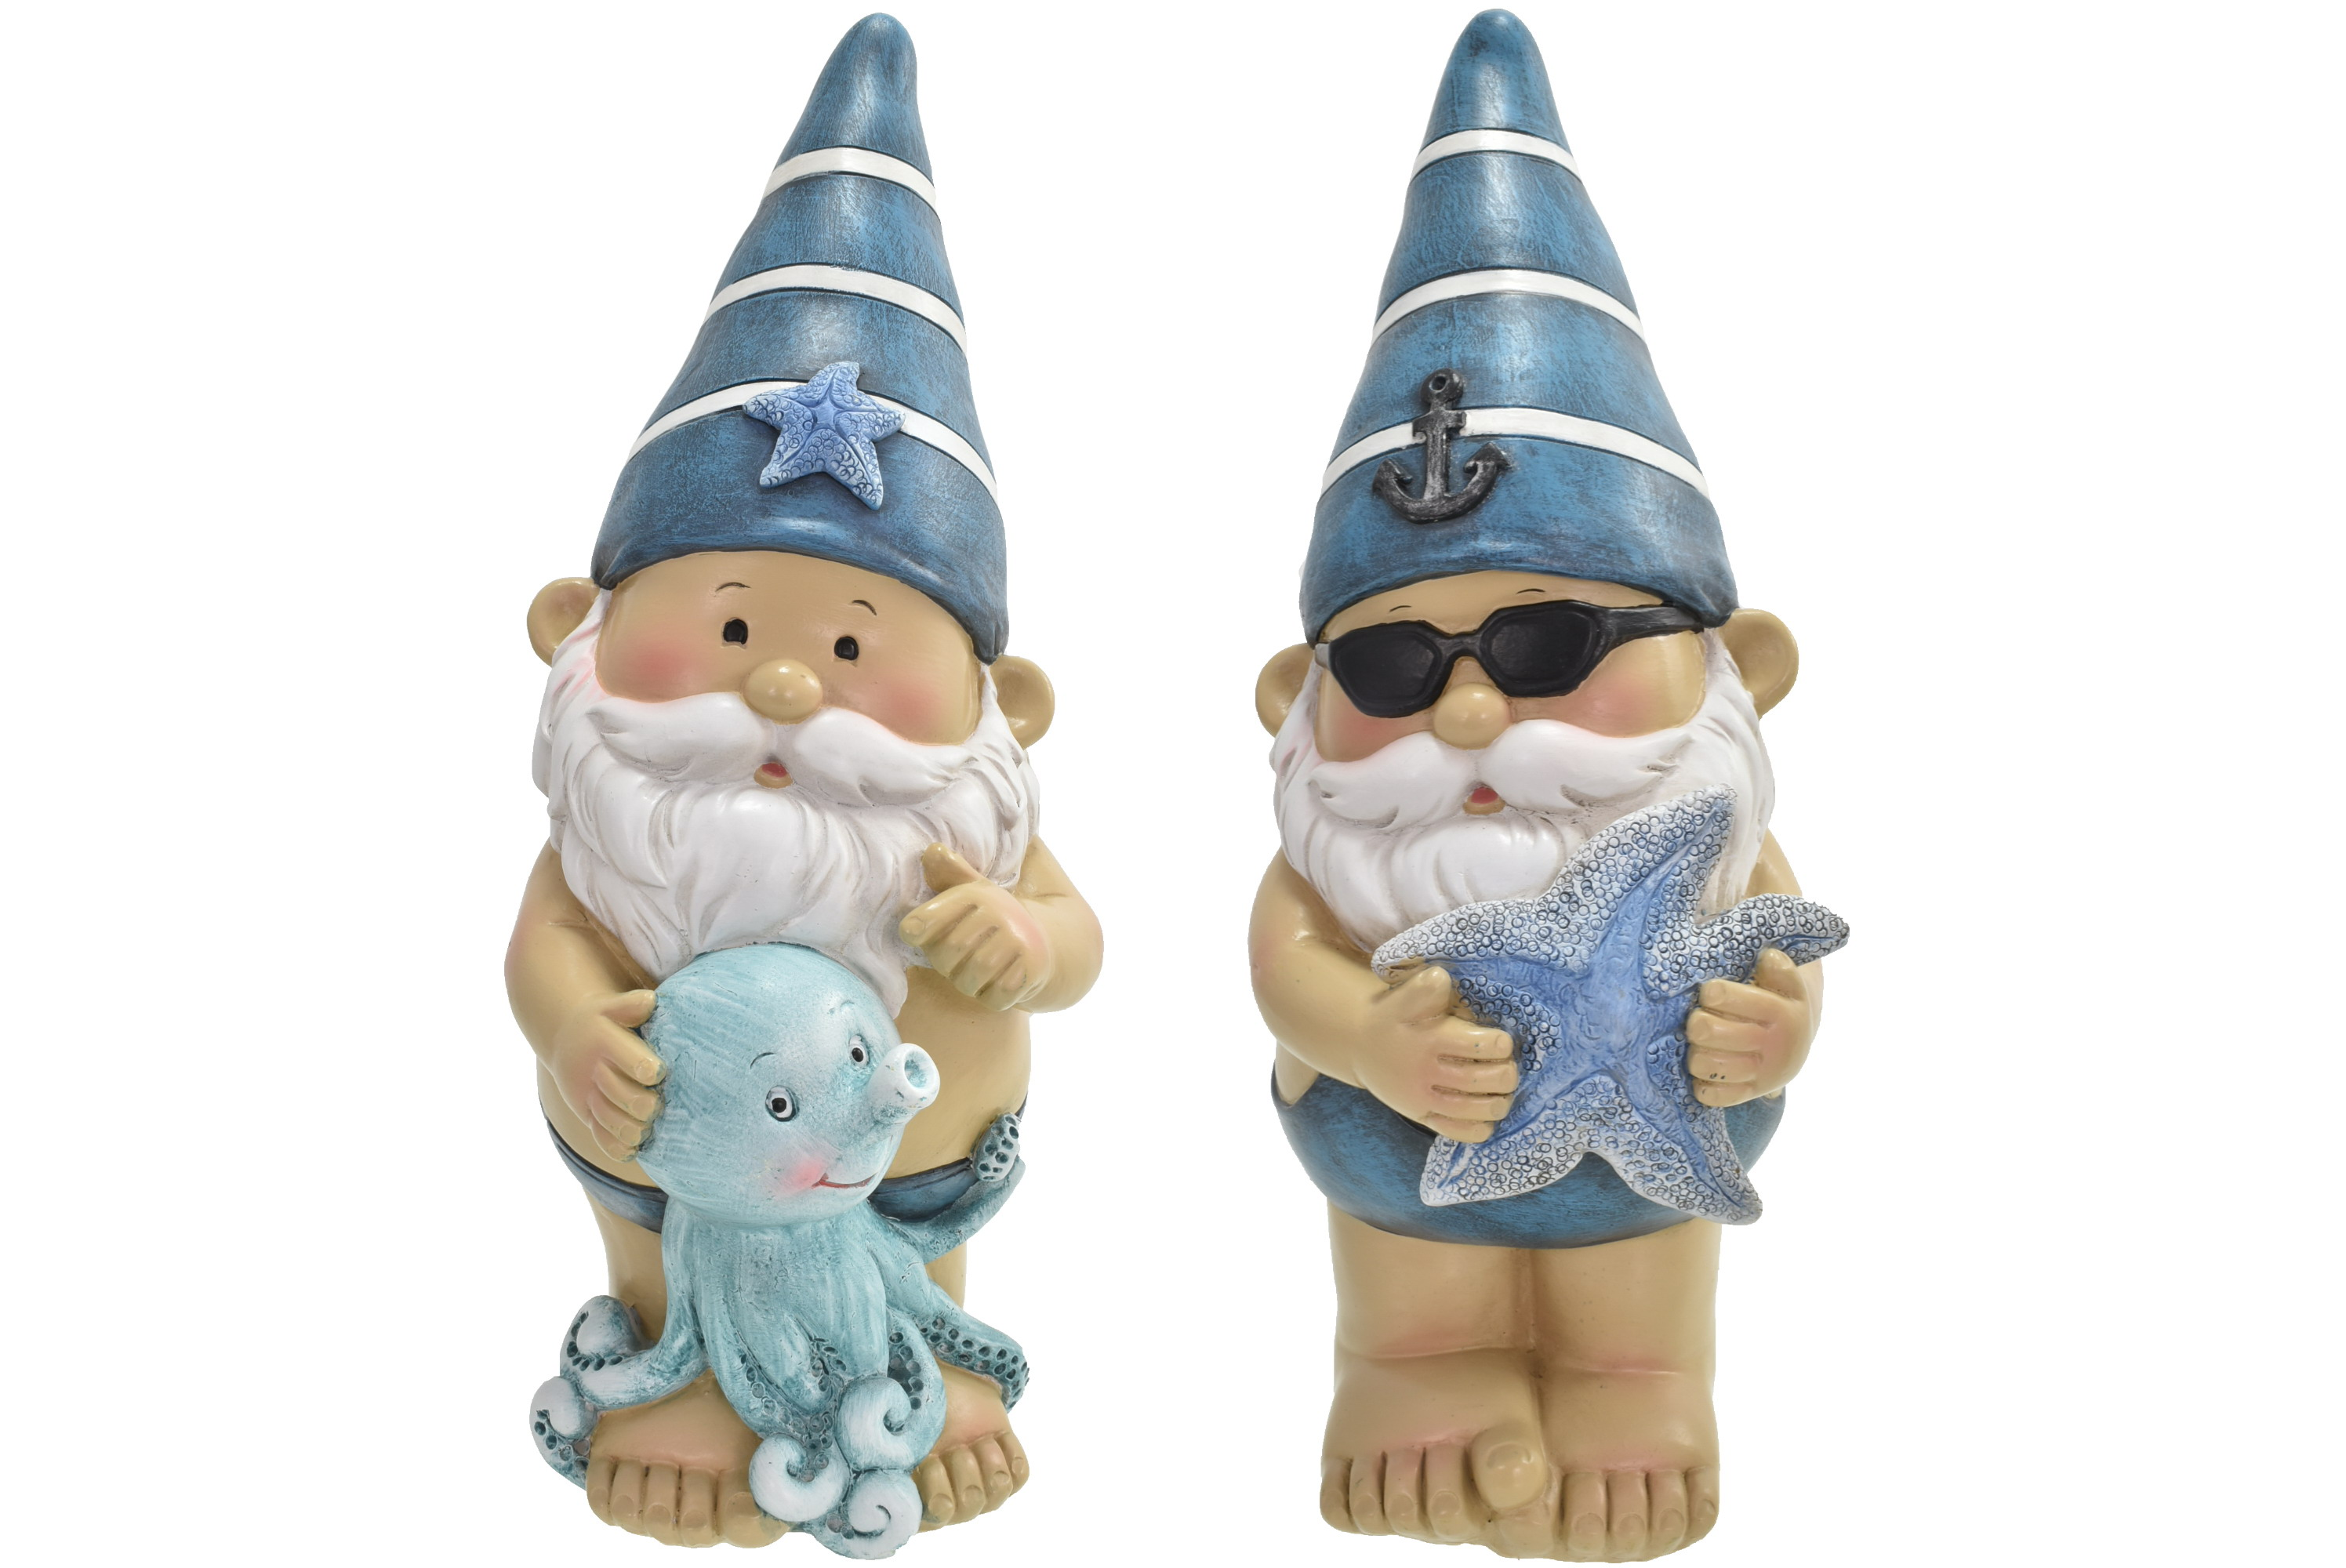 26cm Gnautical Gnome W/ Starfish/Octopus 2 Asst Design